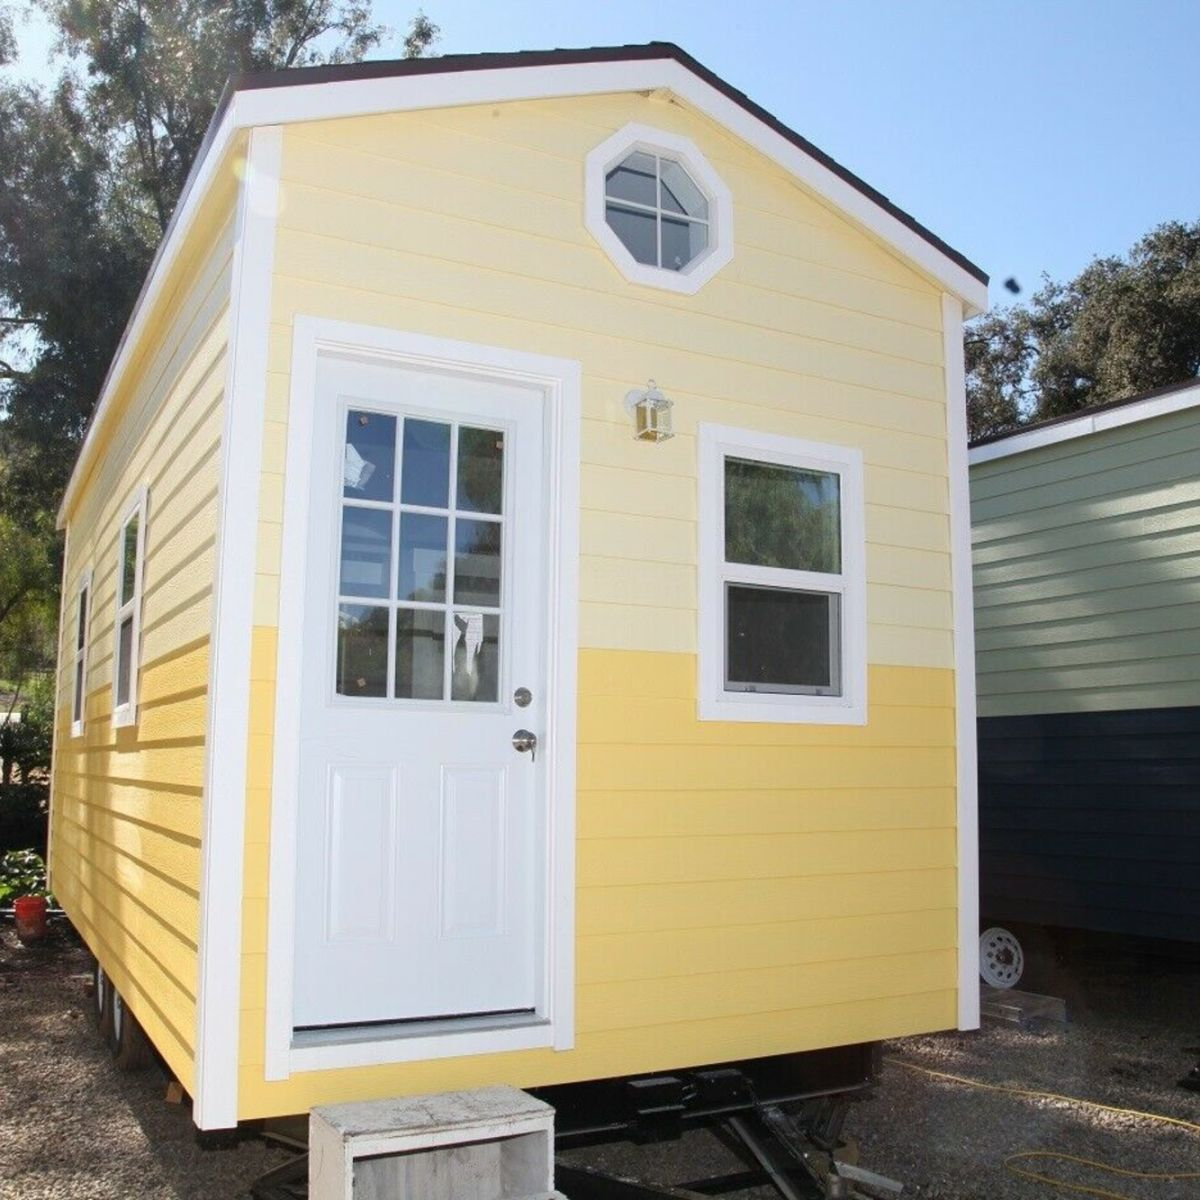 29 x 29 Classic bungalow single loft 29 sq ft Tiny House - Tiny House for  Sale in San Diego, California - Tiny House Listings